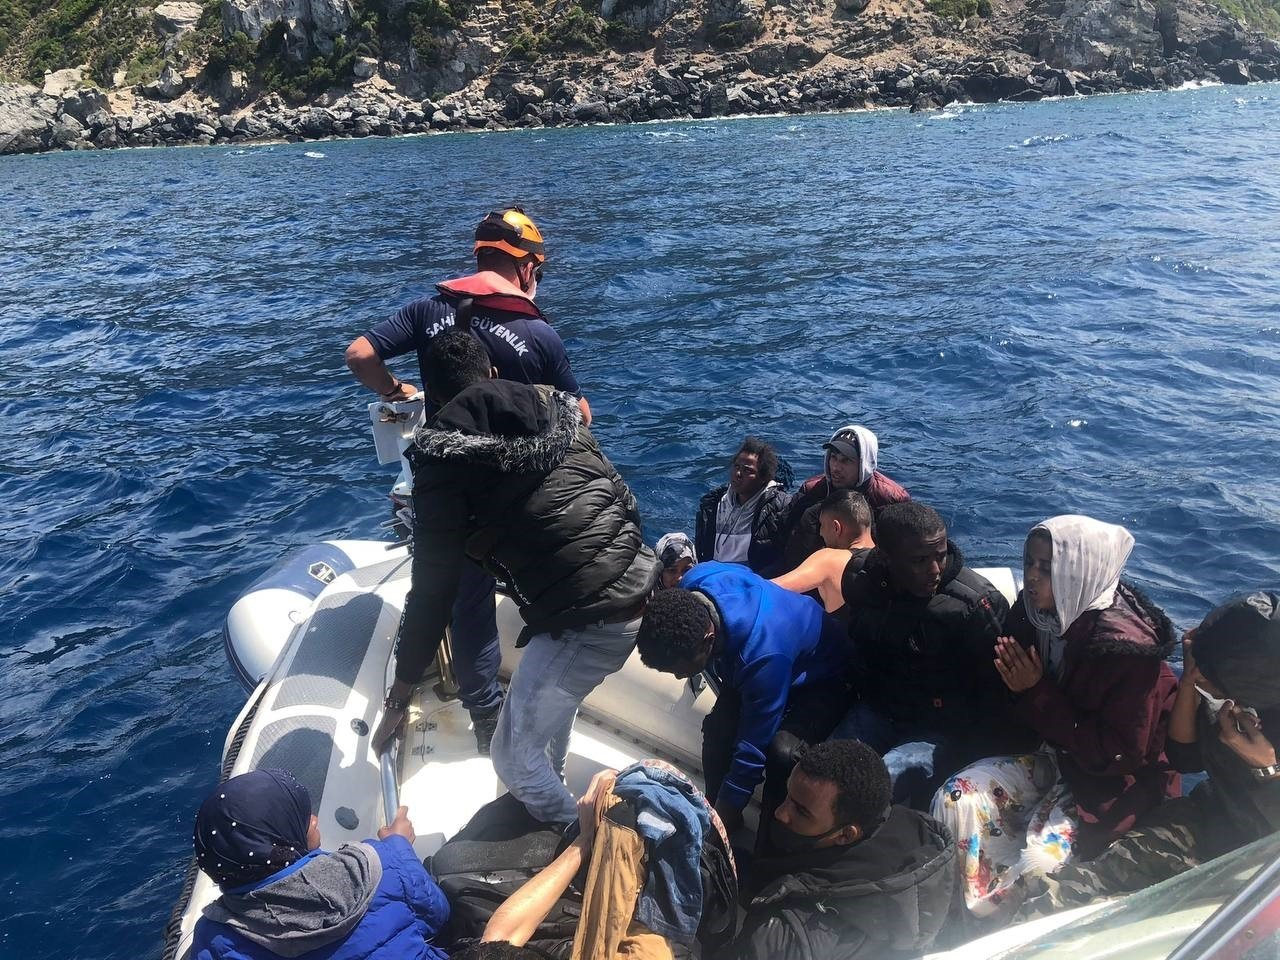 The Turkish coast guard saves asylum-seekers among the 74 they rescued off the coast of Çeşme district in Izmir province, western Turkey, May 31, 2021. (AA Photo)